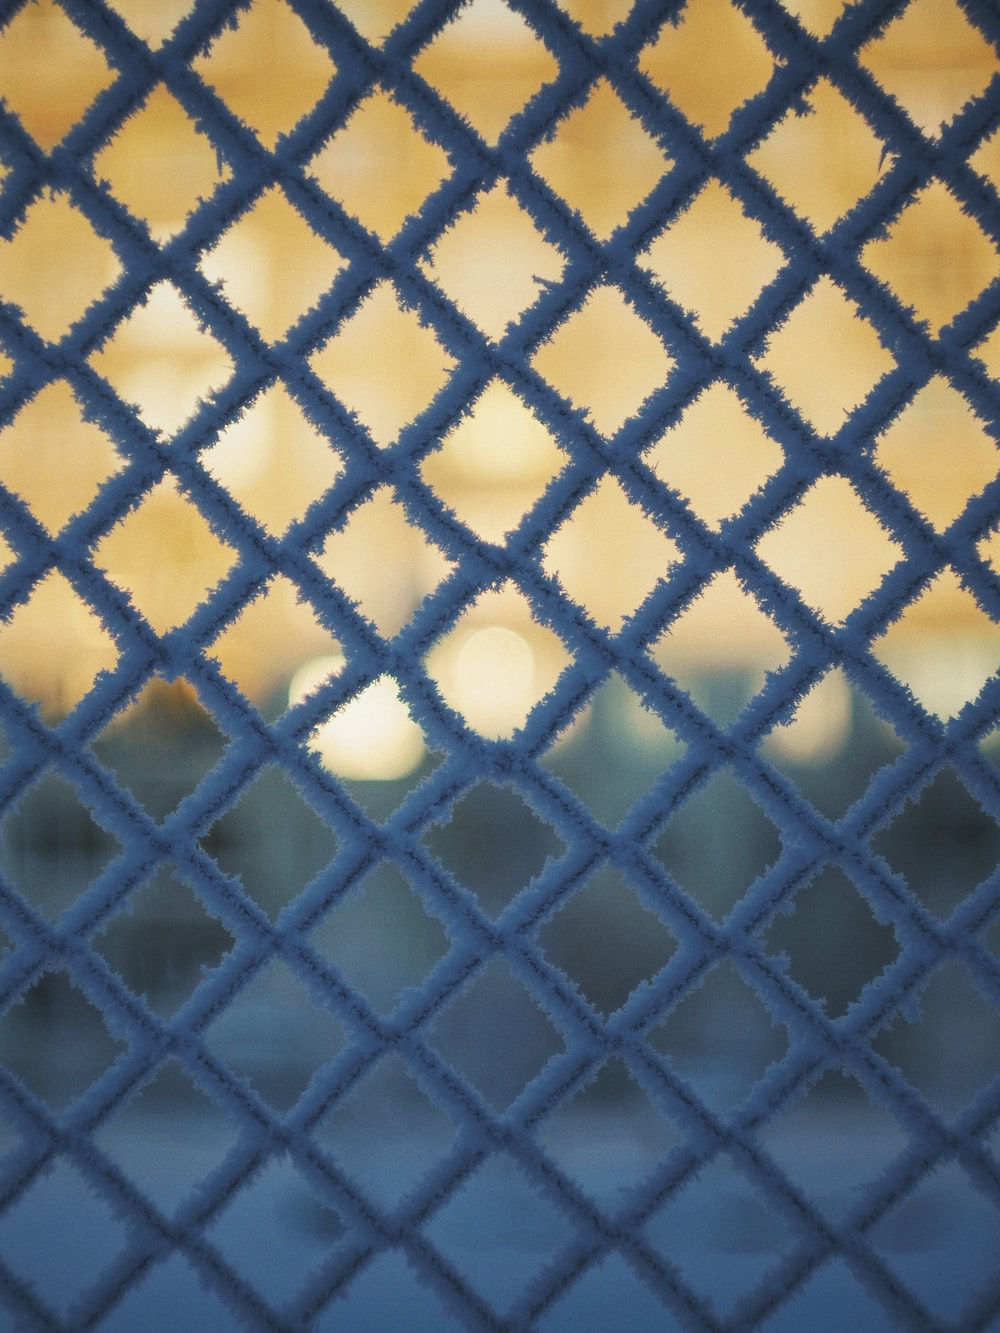 blue and white metal screen